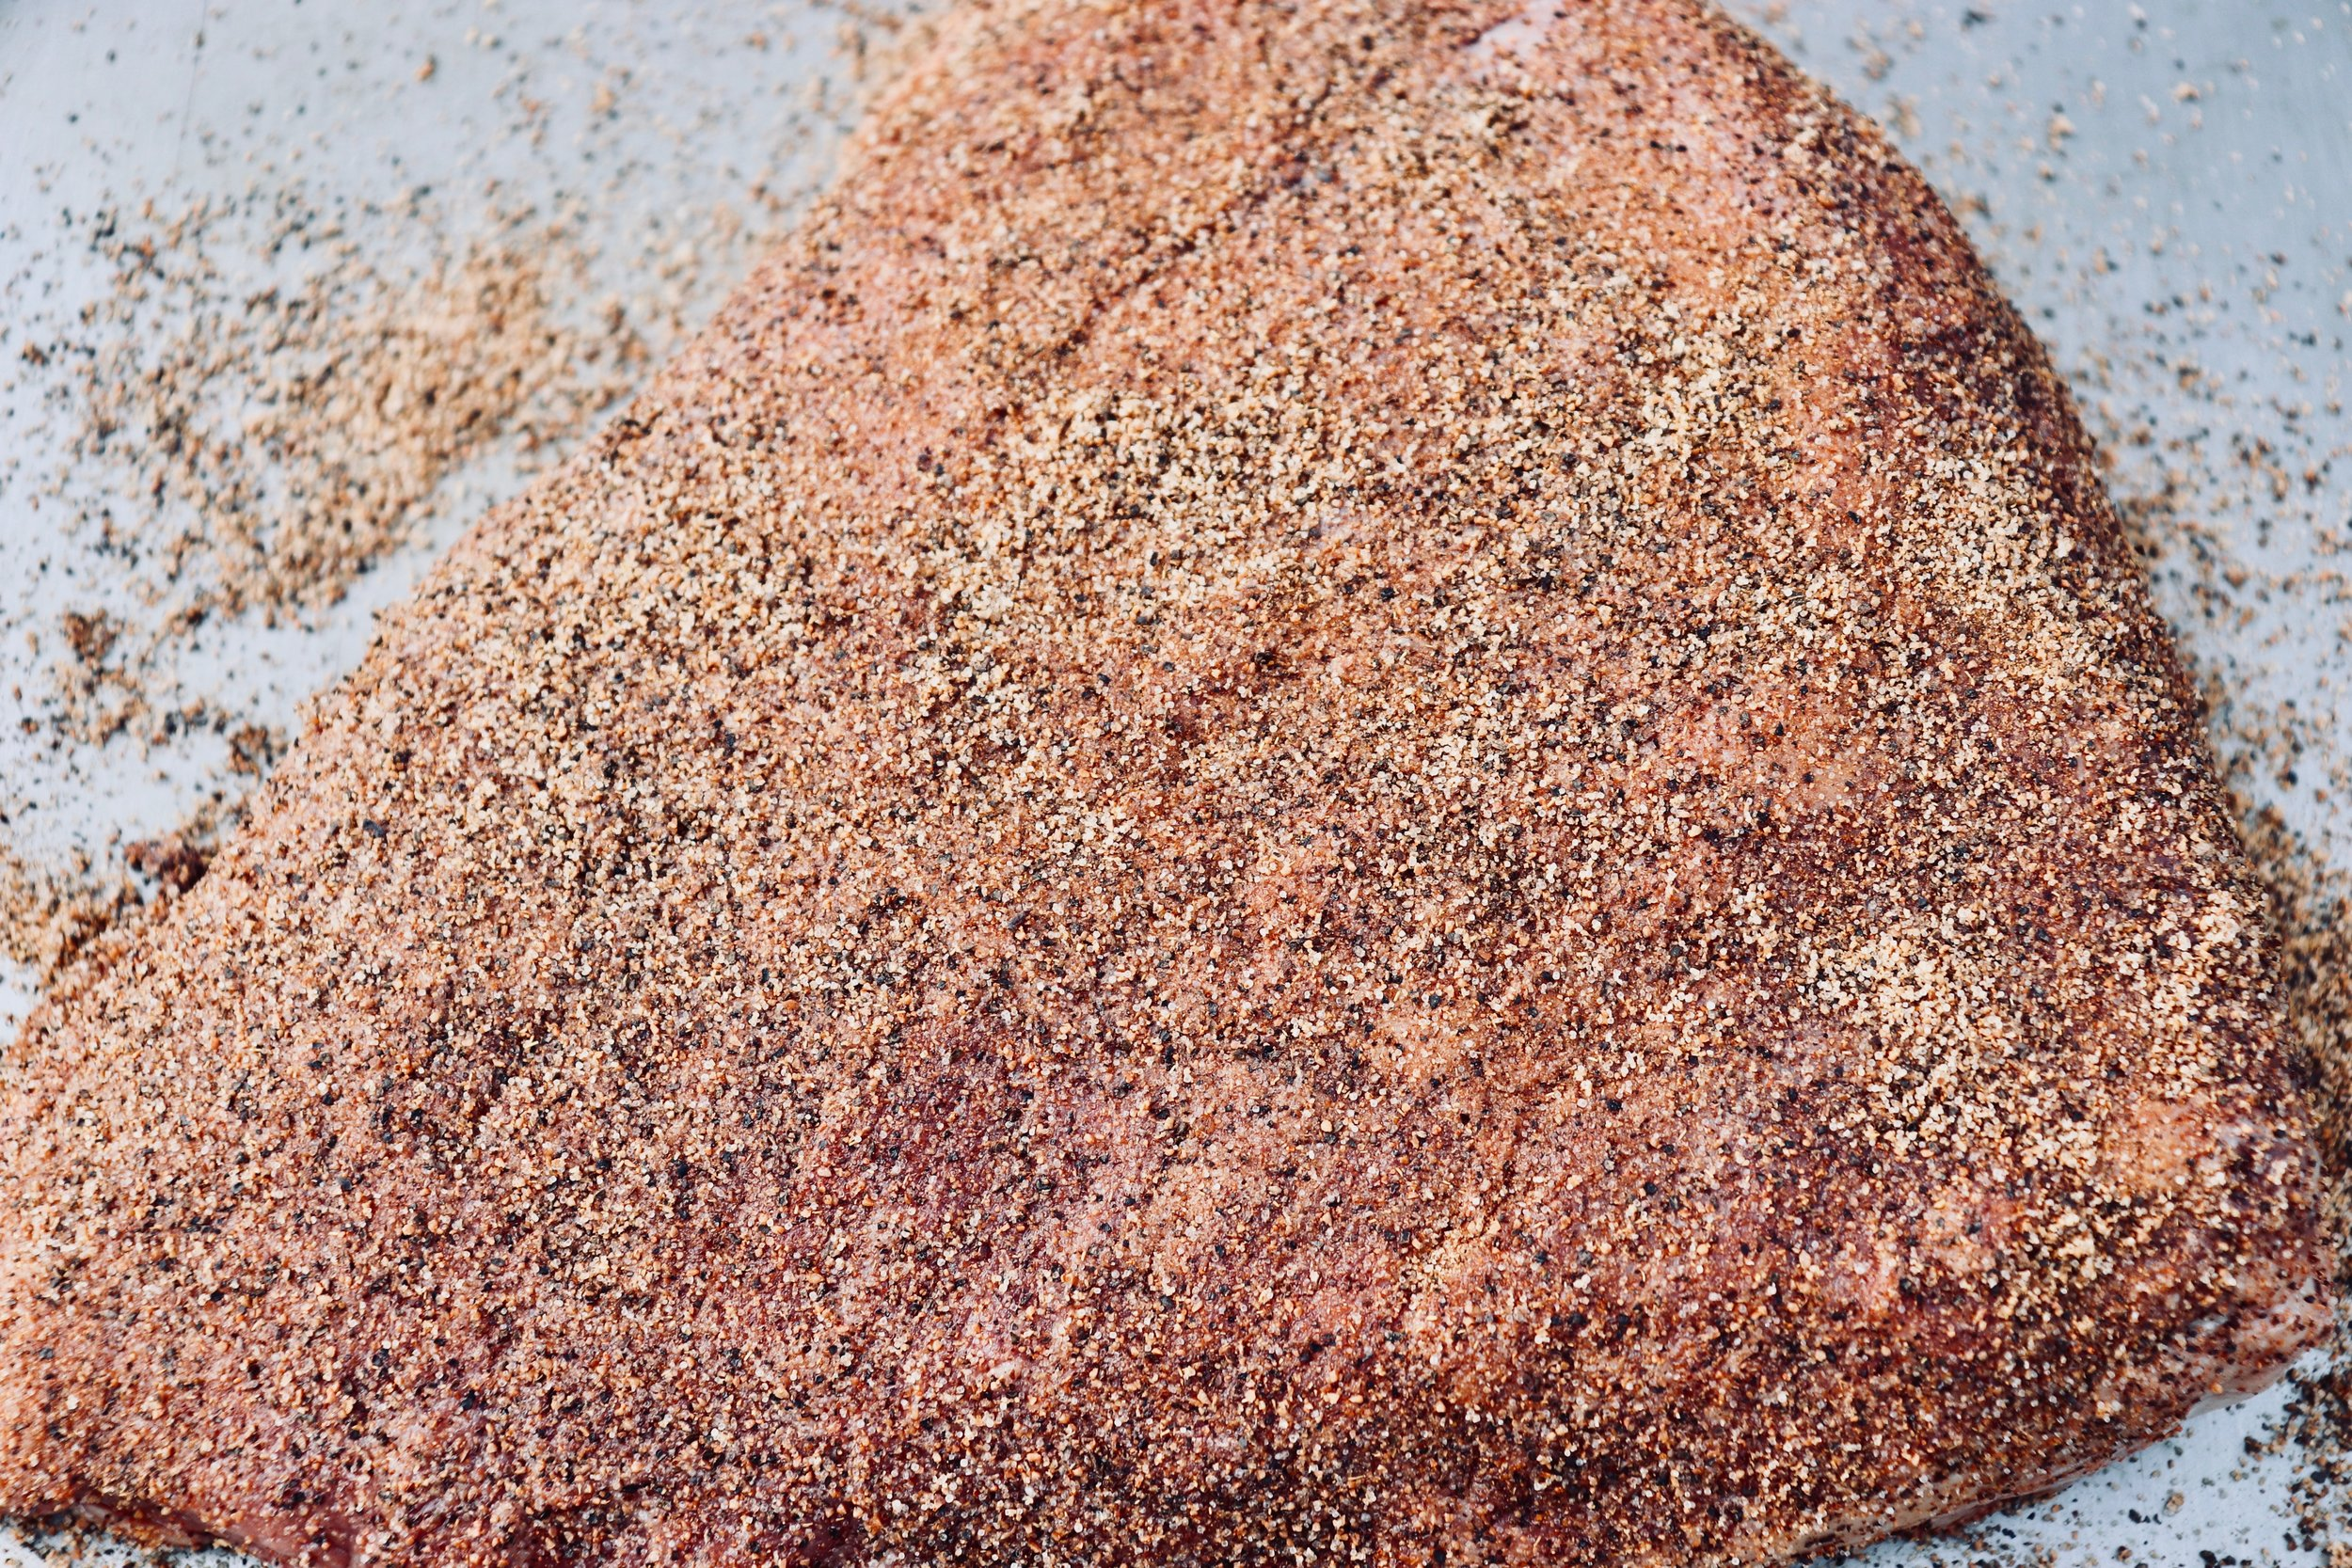 Dry rub liberally applied to the Picanha